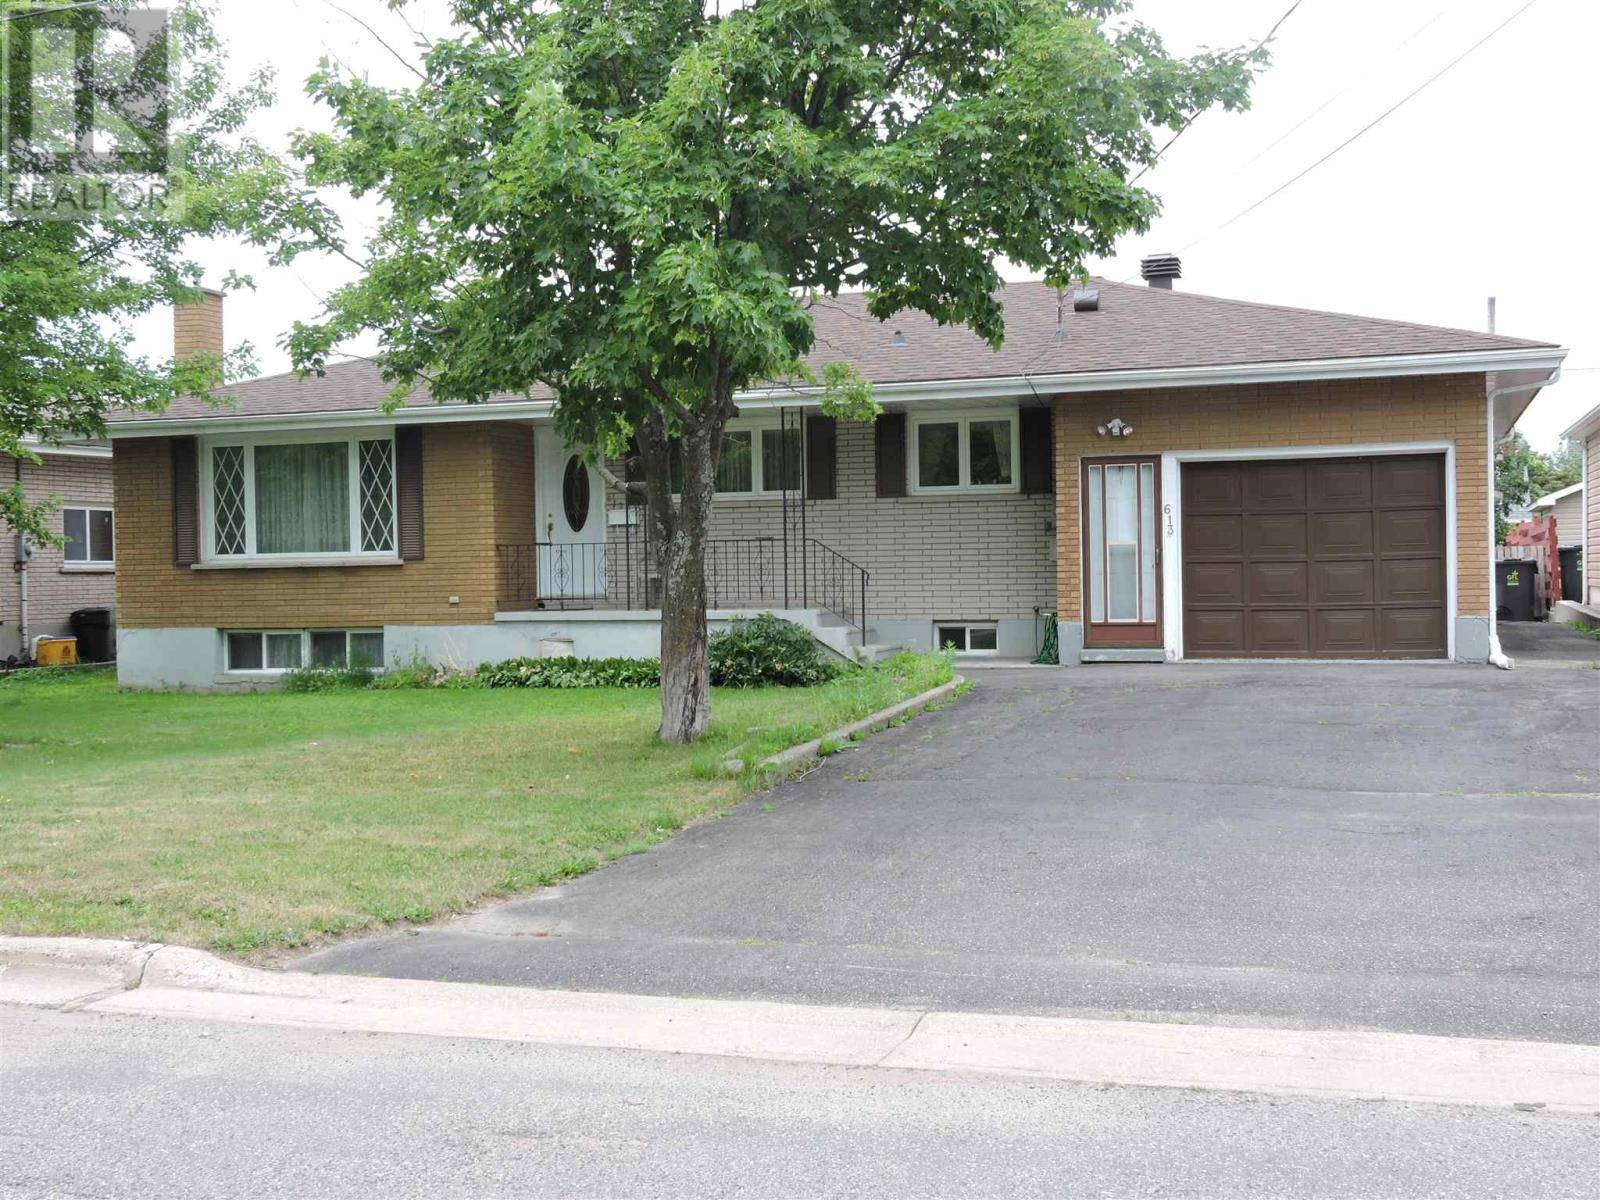 House for sale at 613 Wilson St Sault Ste. Marie Ontario - MLS: SM127535